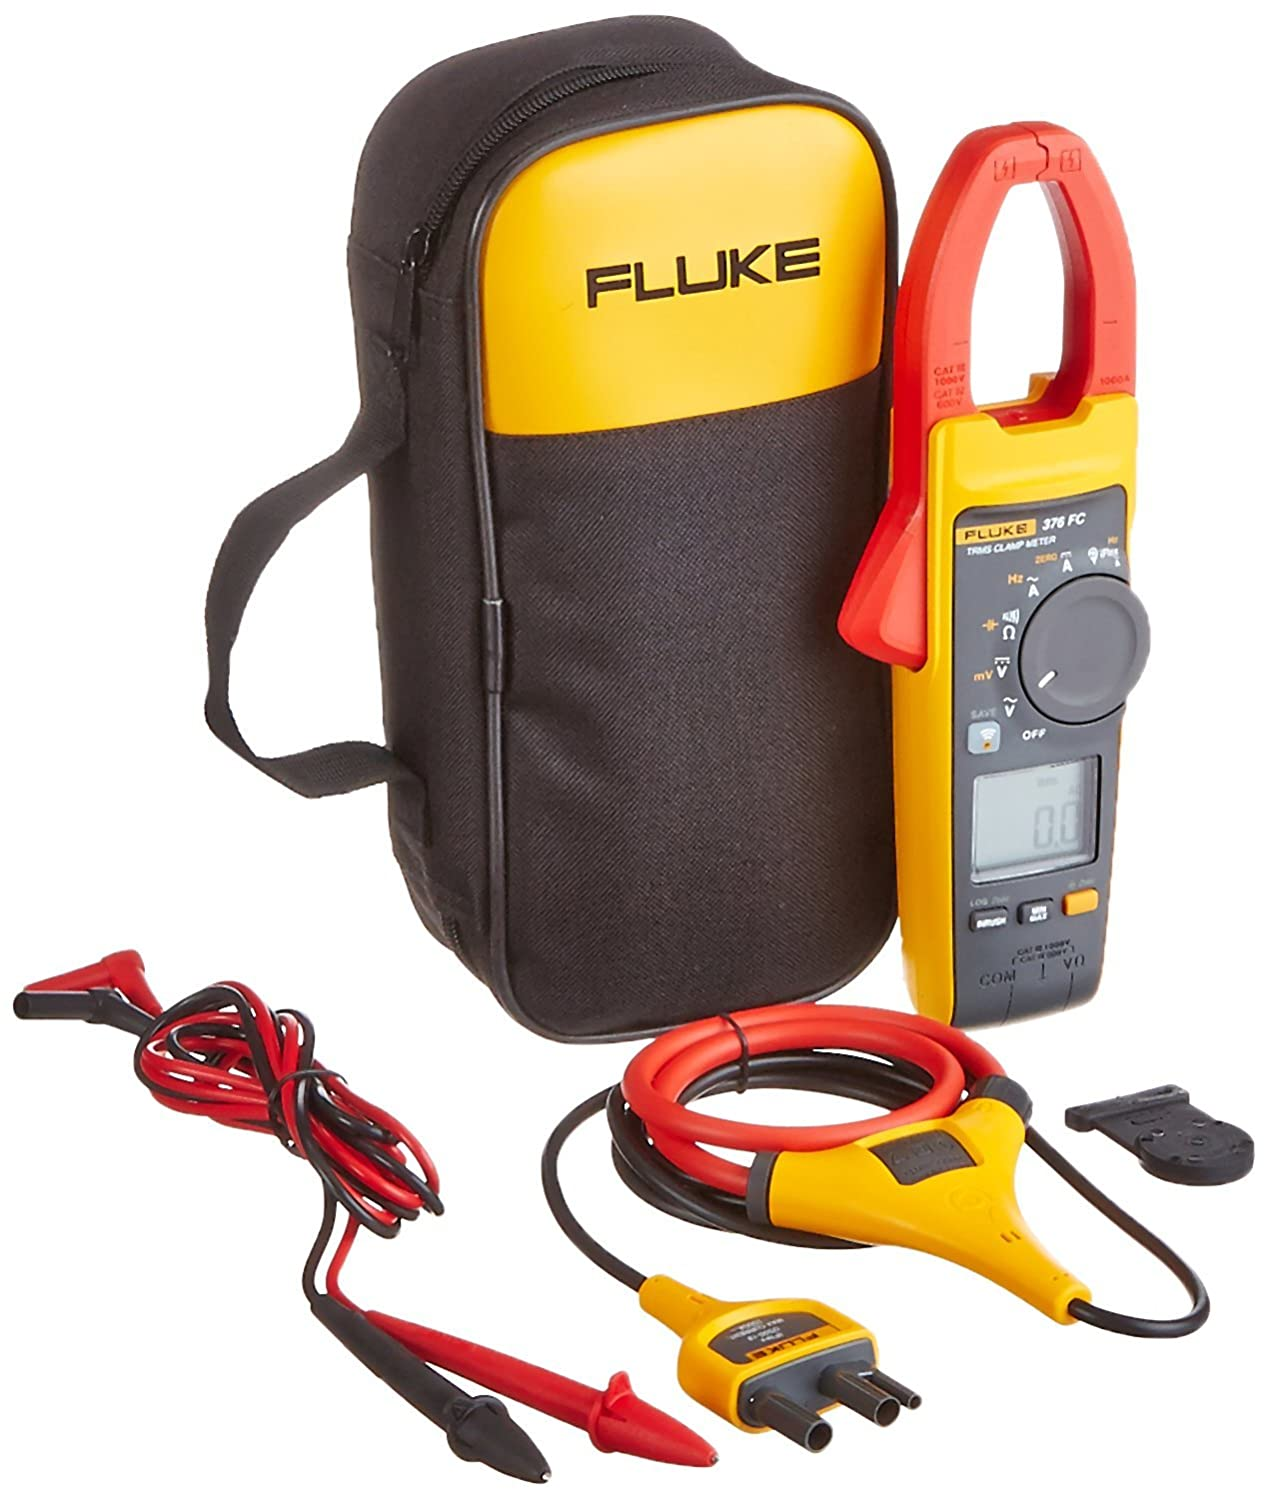 Fluke 376FC True-RMS Clamp Meter with iFlex